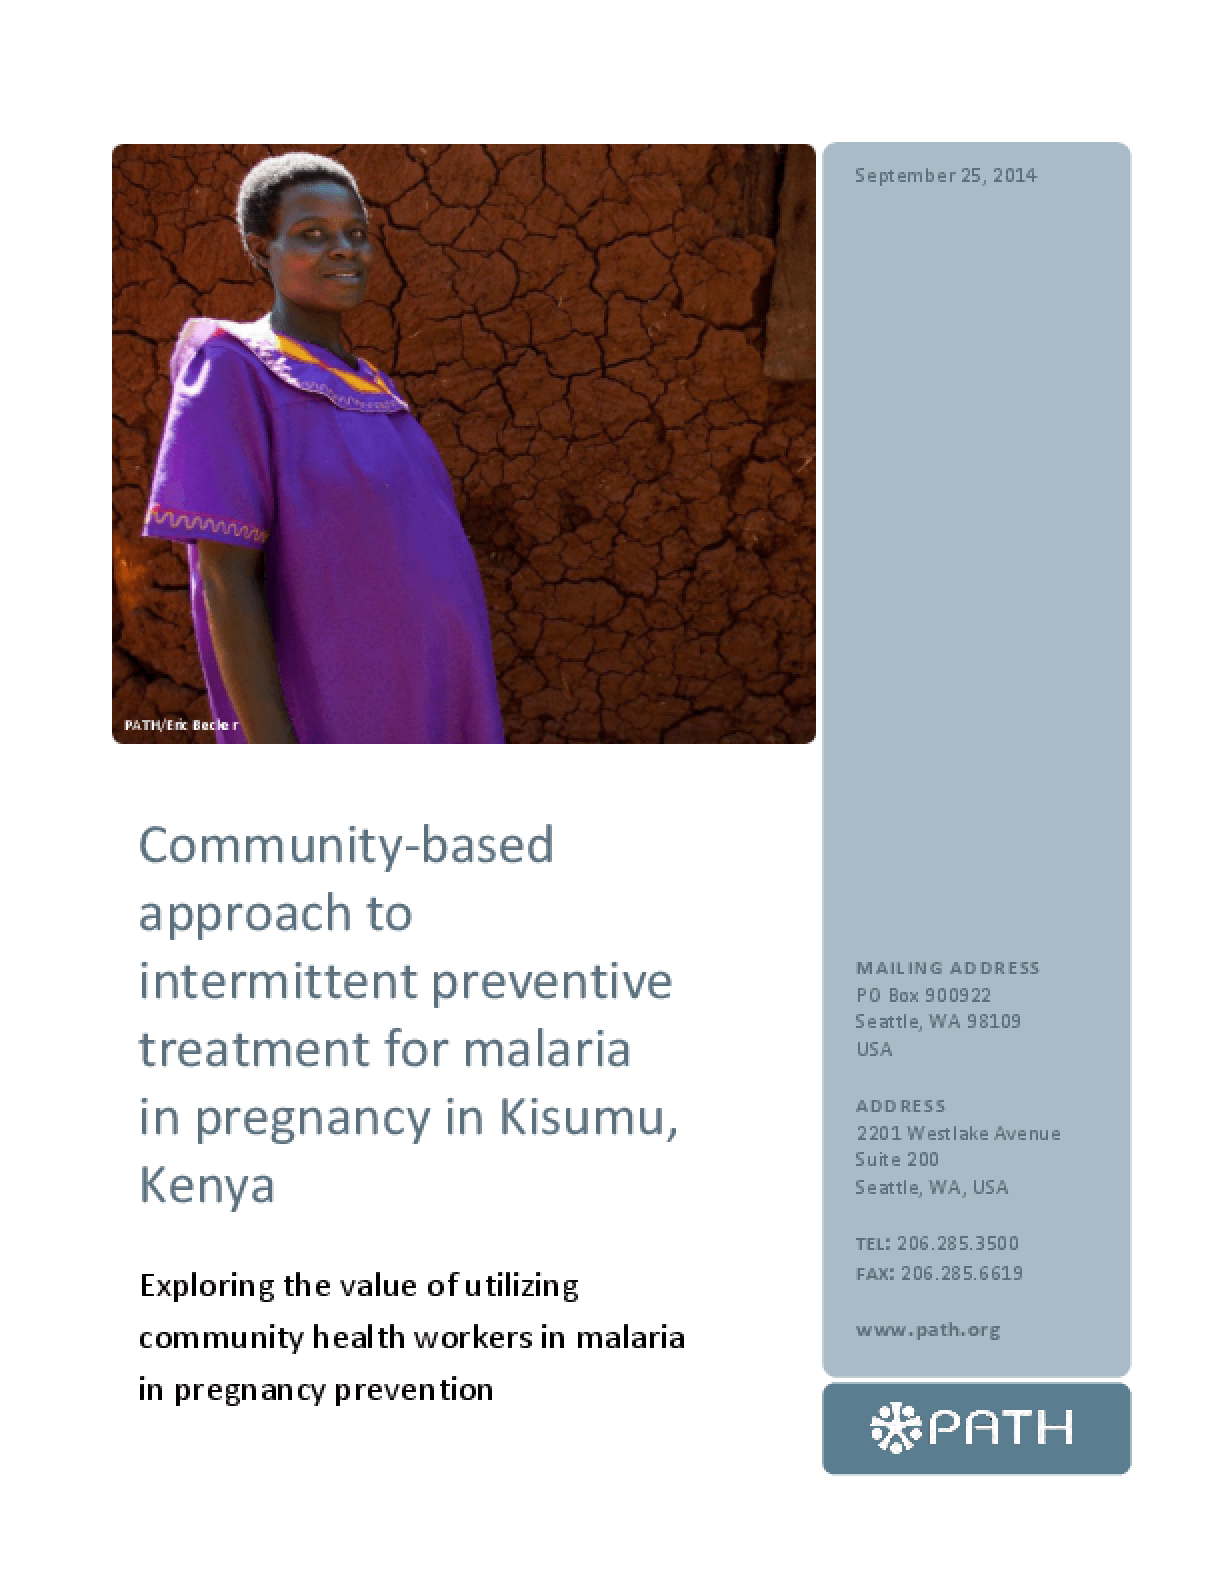 Community-based Approach to Intermittent Preventive Treatment for Malaria in Pregnancy in Kisumu, Kenya